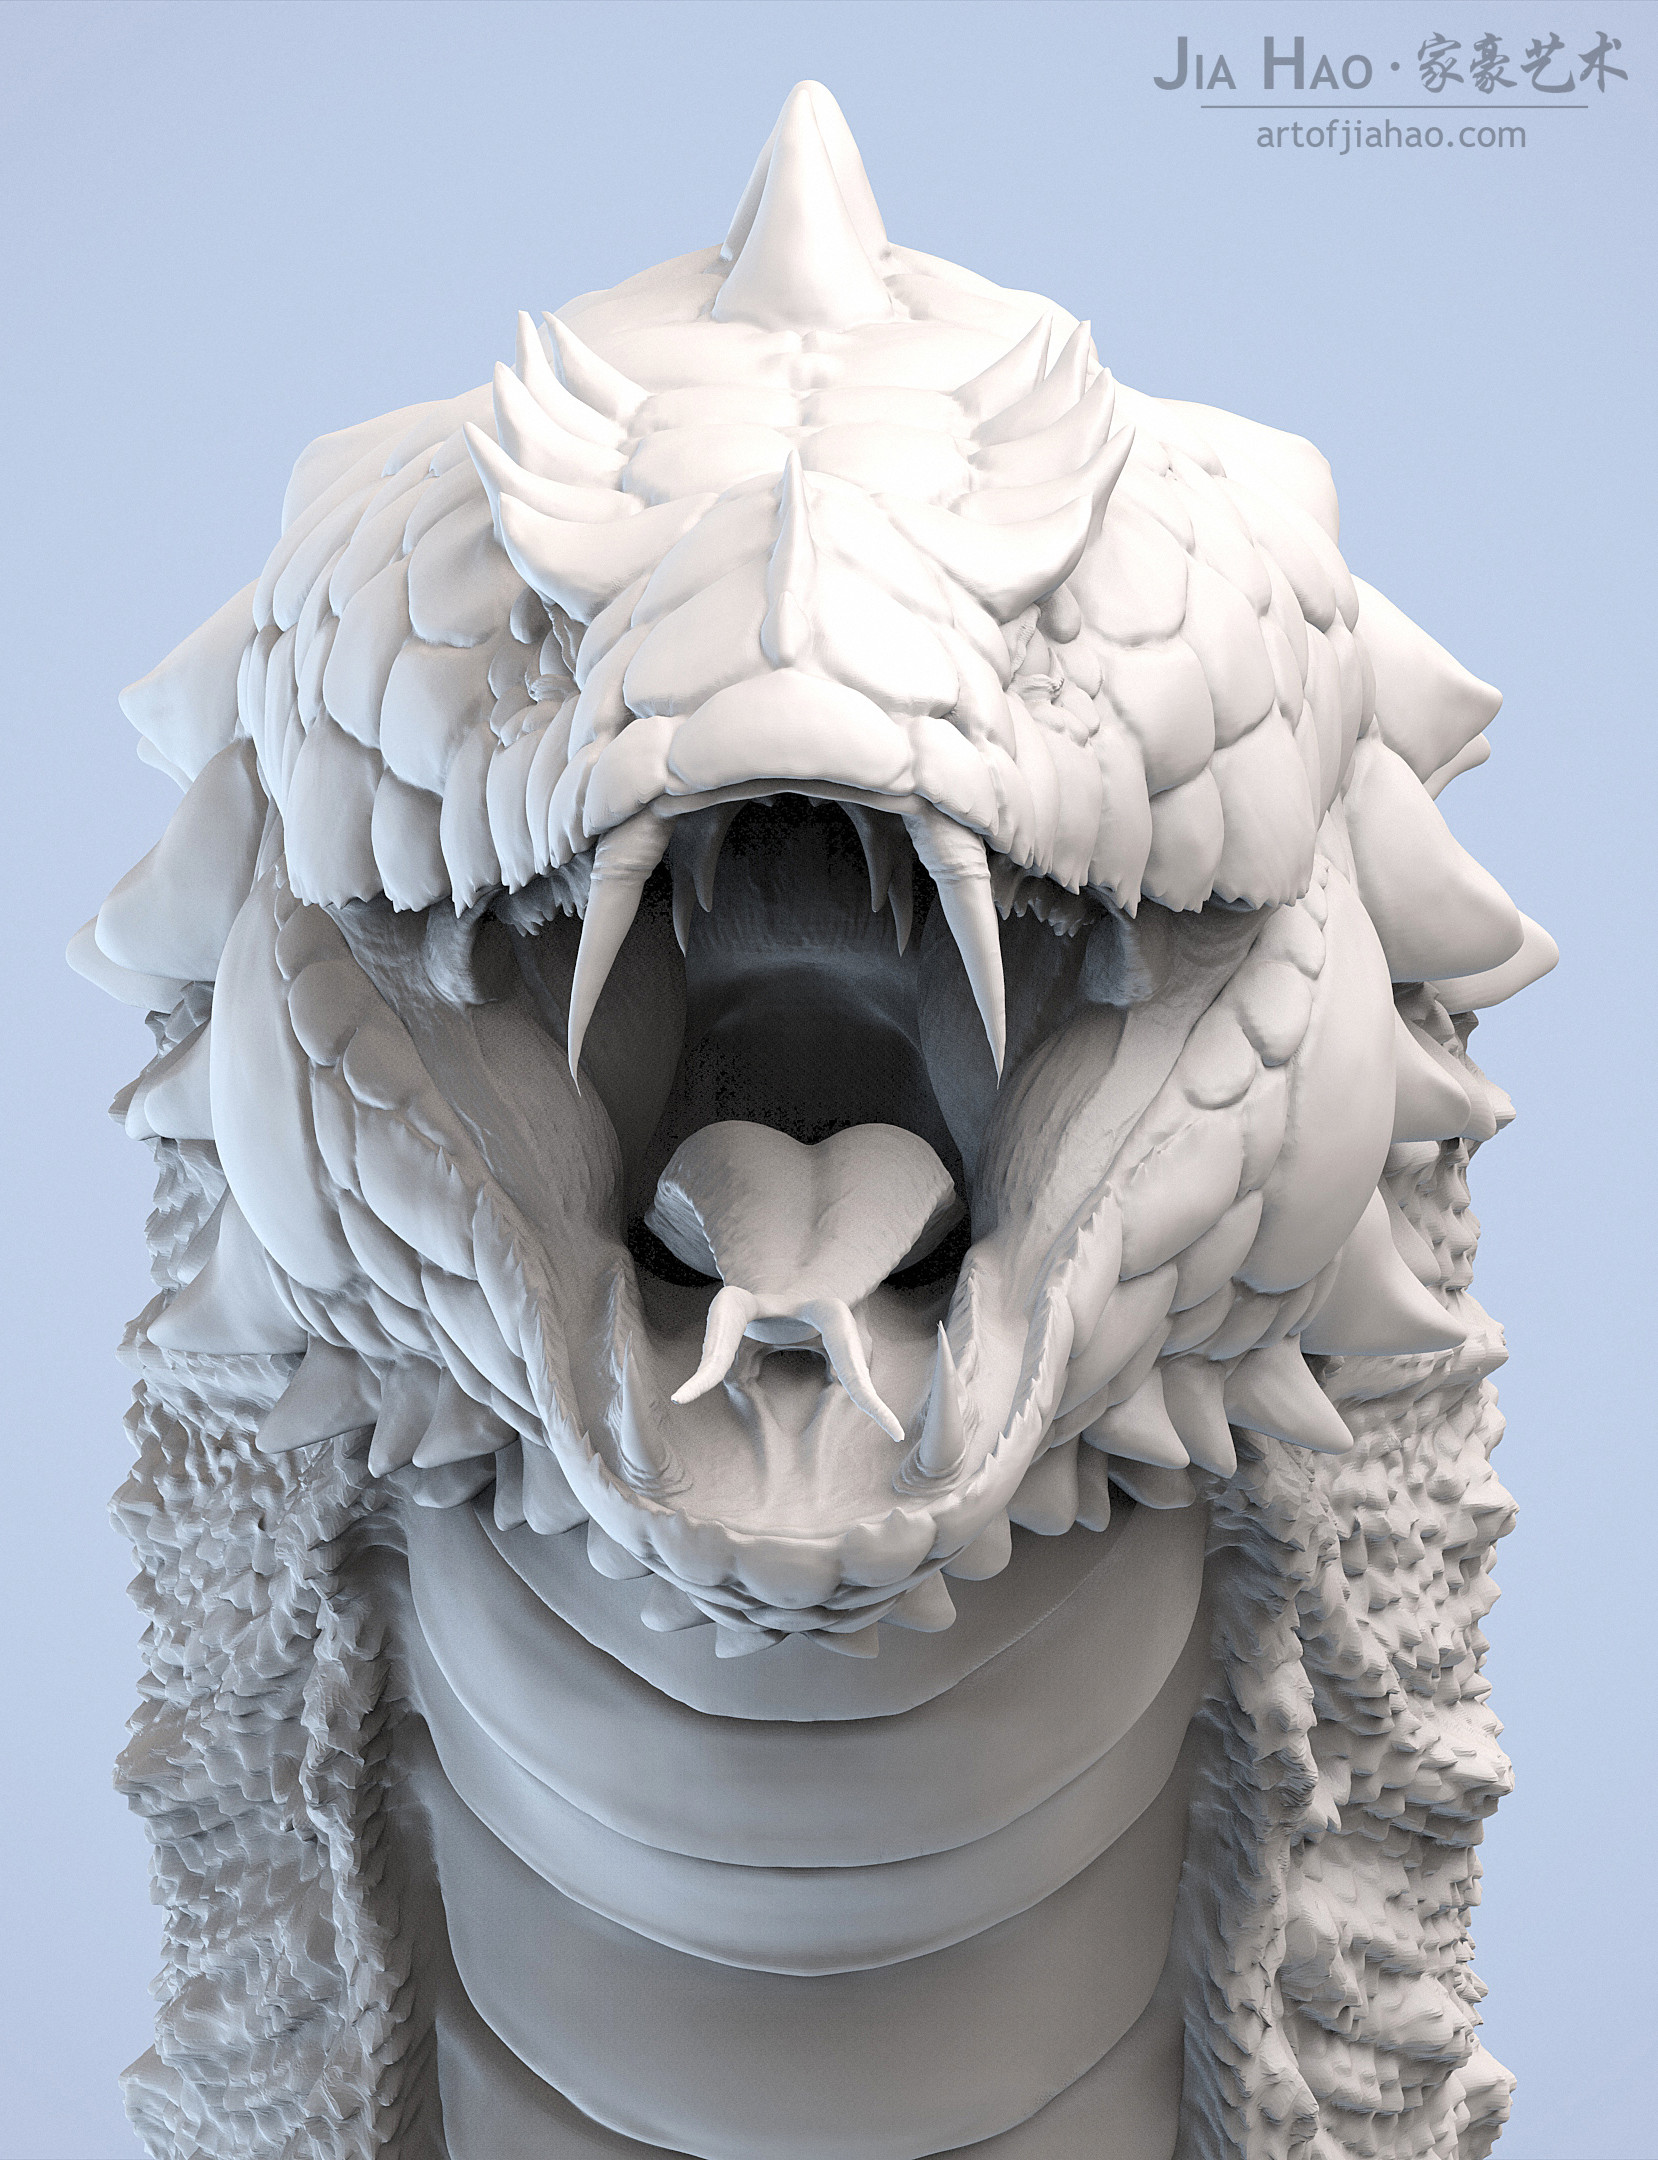 Jia hao 2018 basilisk digitalsculpting 02